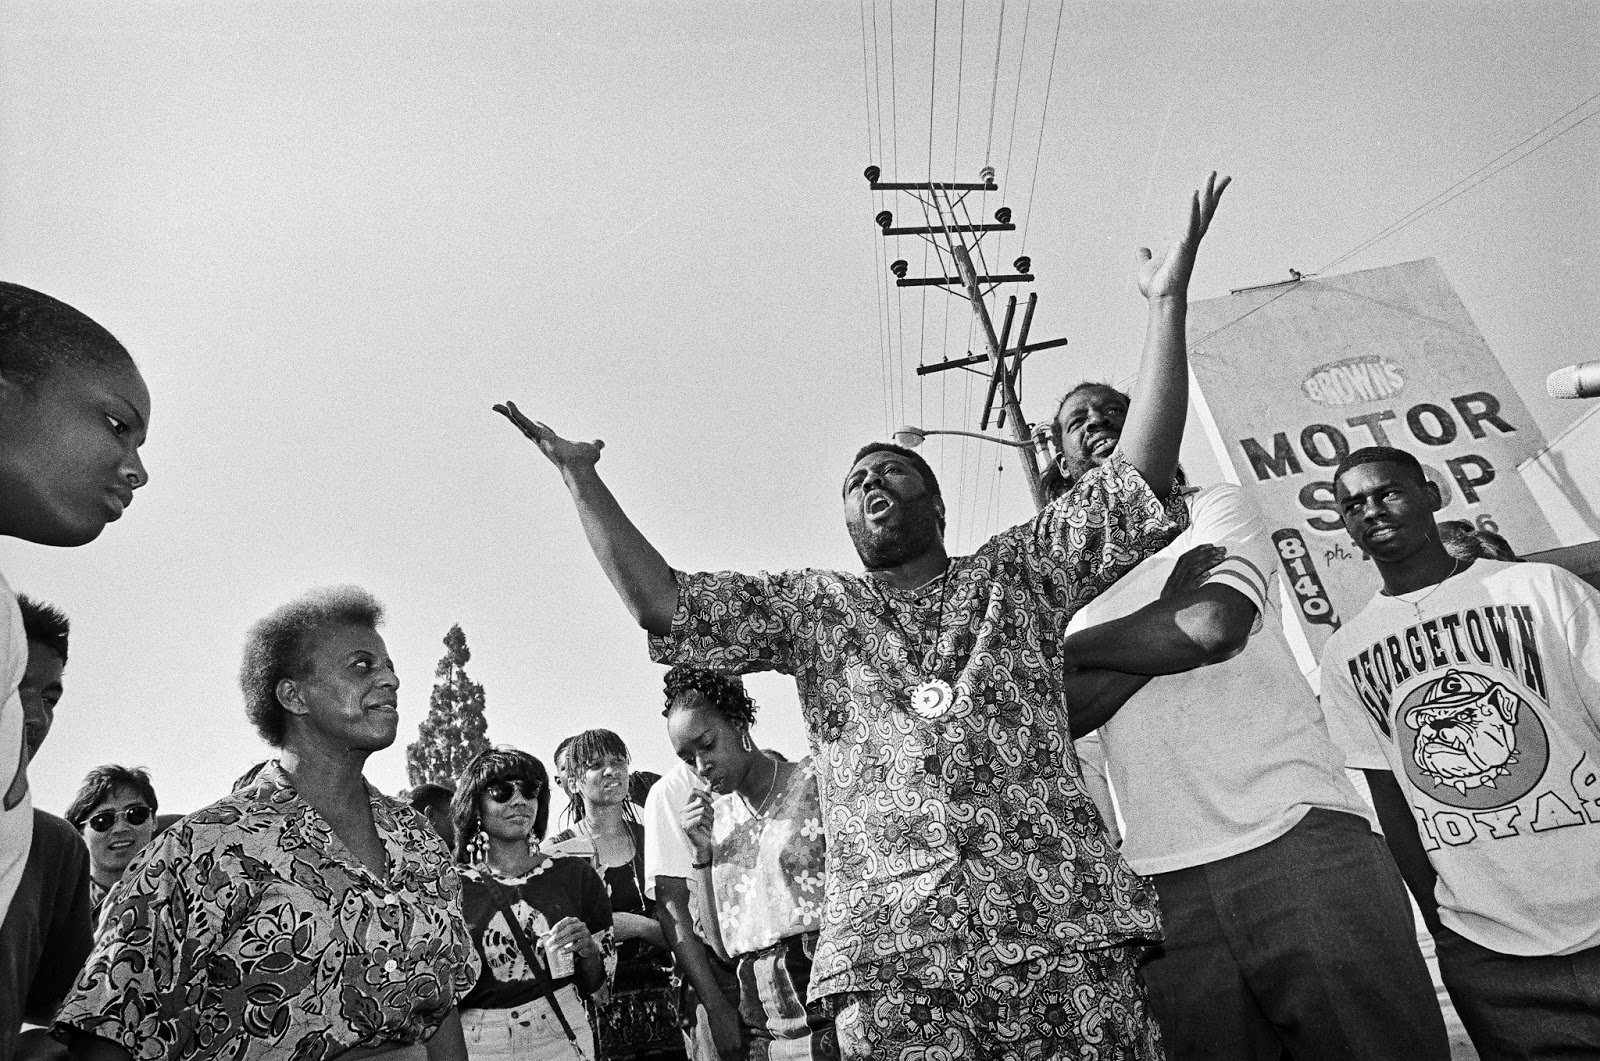 LA 92: 25 Years After the Rodney King Riots, History is Still Repeating Itself